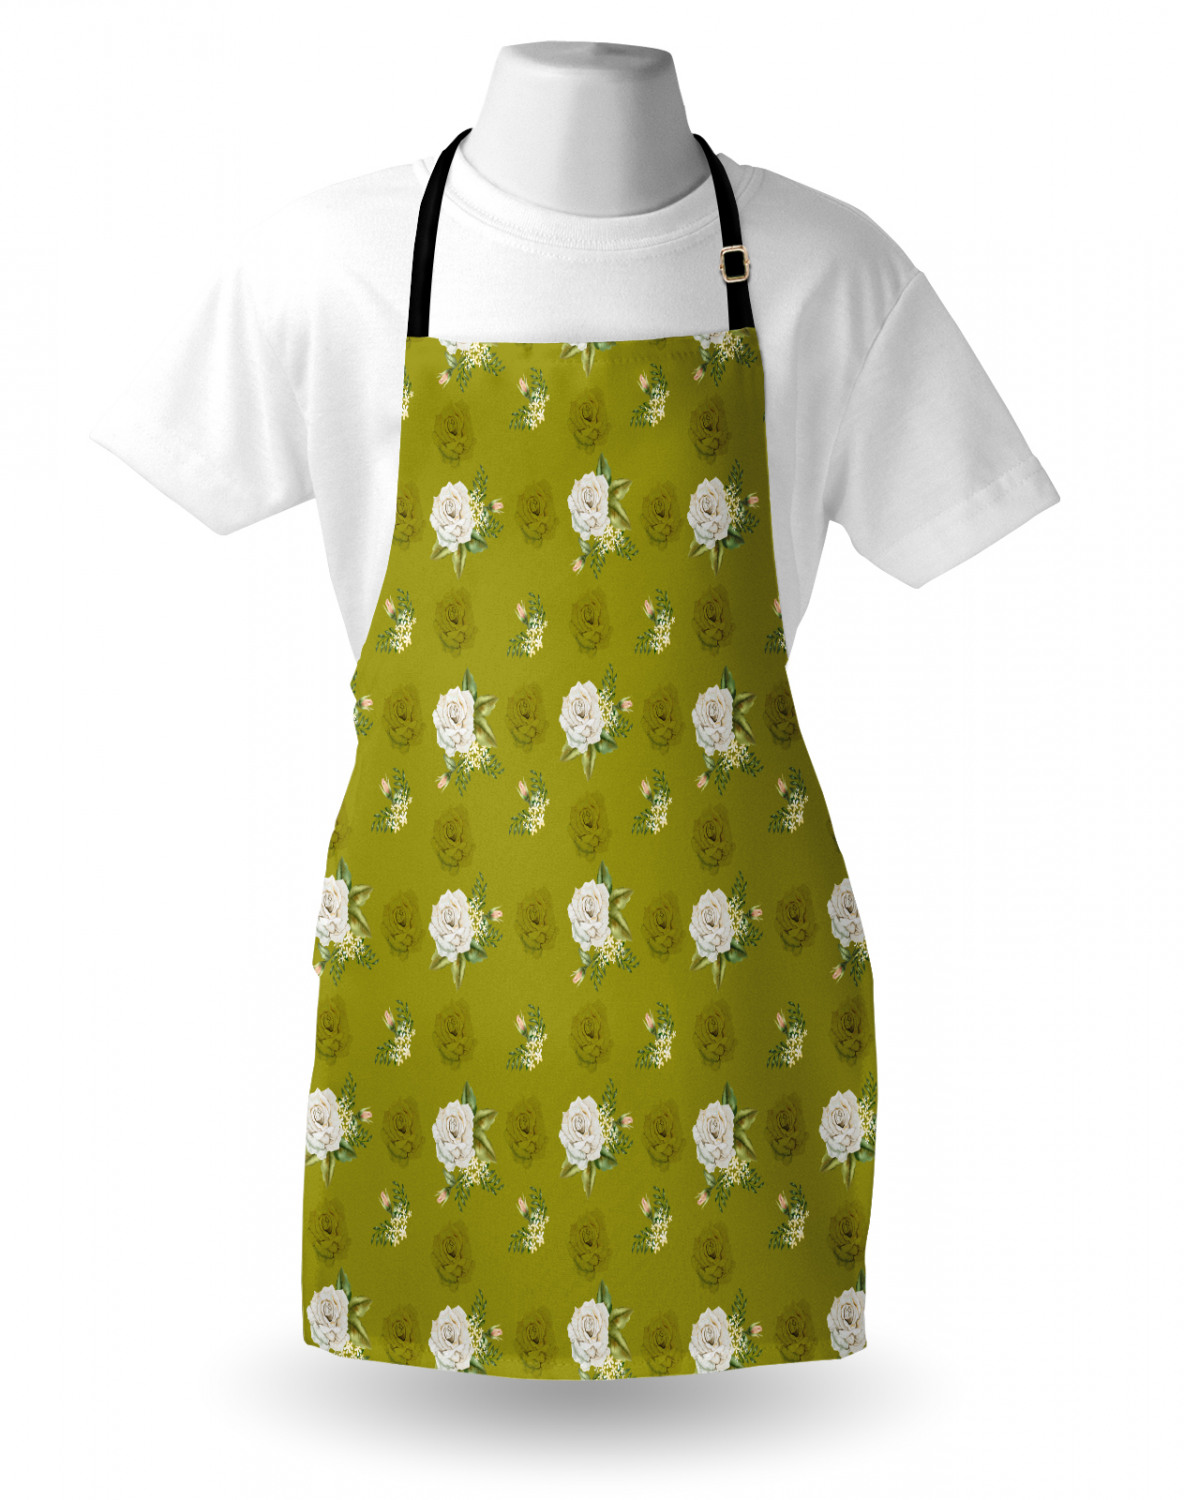 Ambesonne-Outdoor-Use-Apron-with-Adjustable-Neck-Strap-for-Gardening-and-Cooking miniatura 159